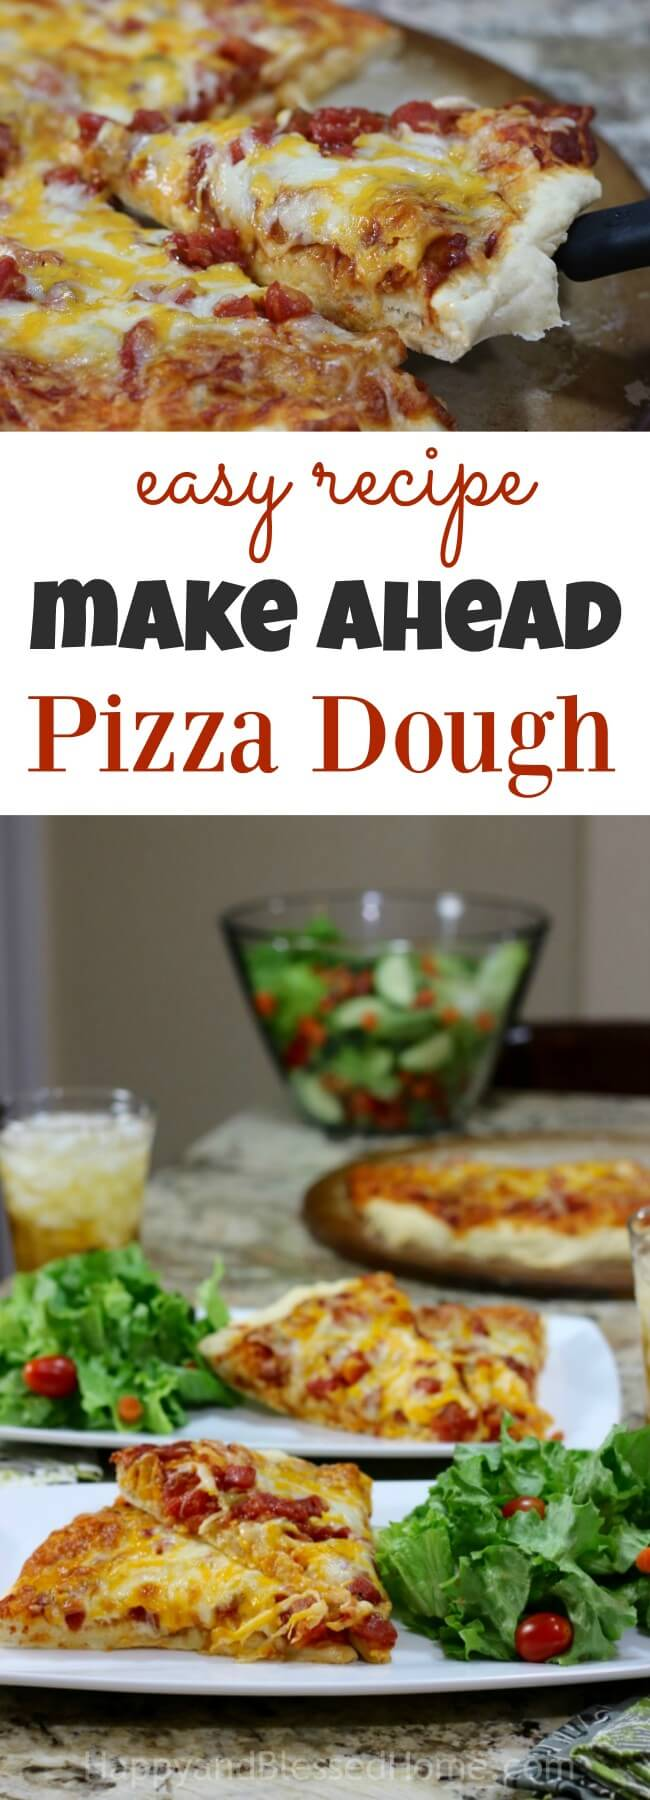 Party coming up ? Make this easy recipe for make ahead pizza dough!